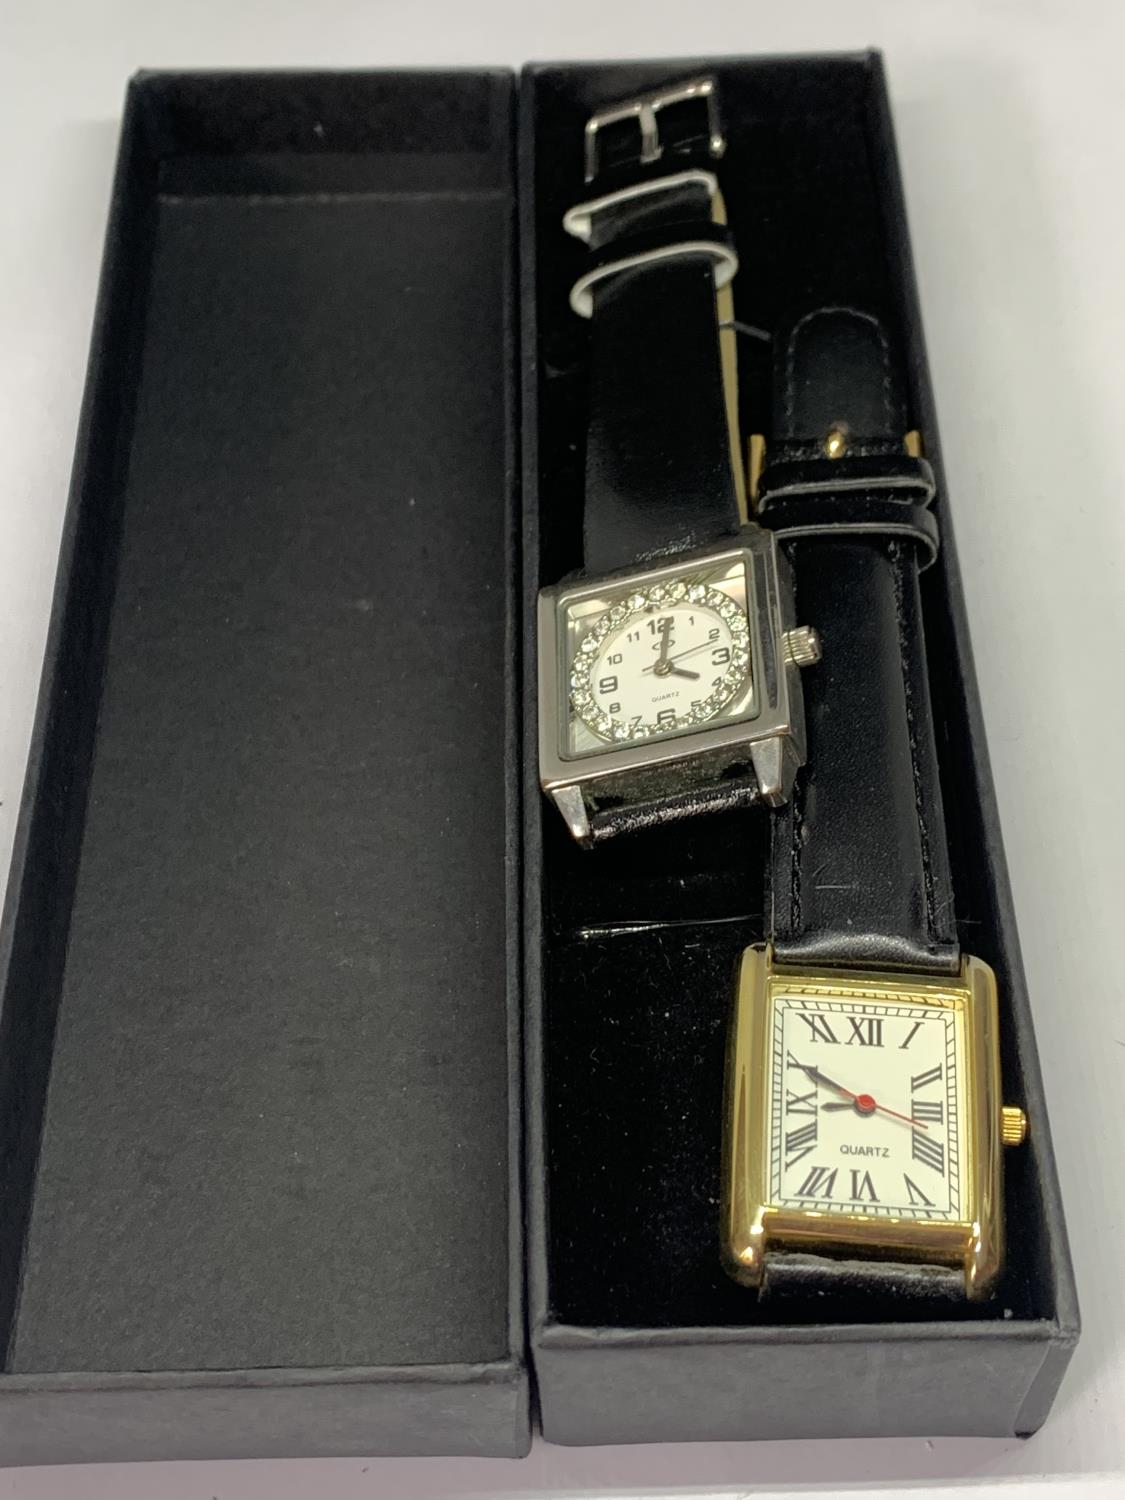 TWO WRISTWATCHES WITH BLACK LEATHER STRAPS